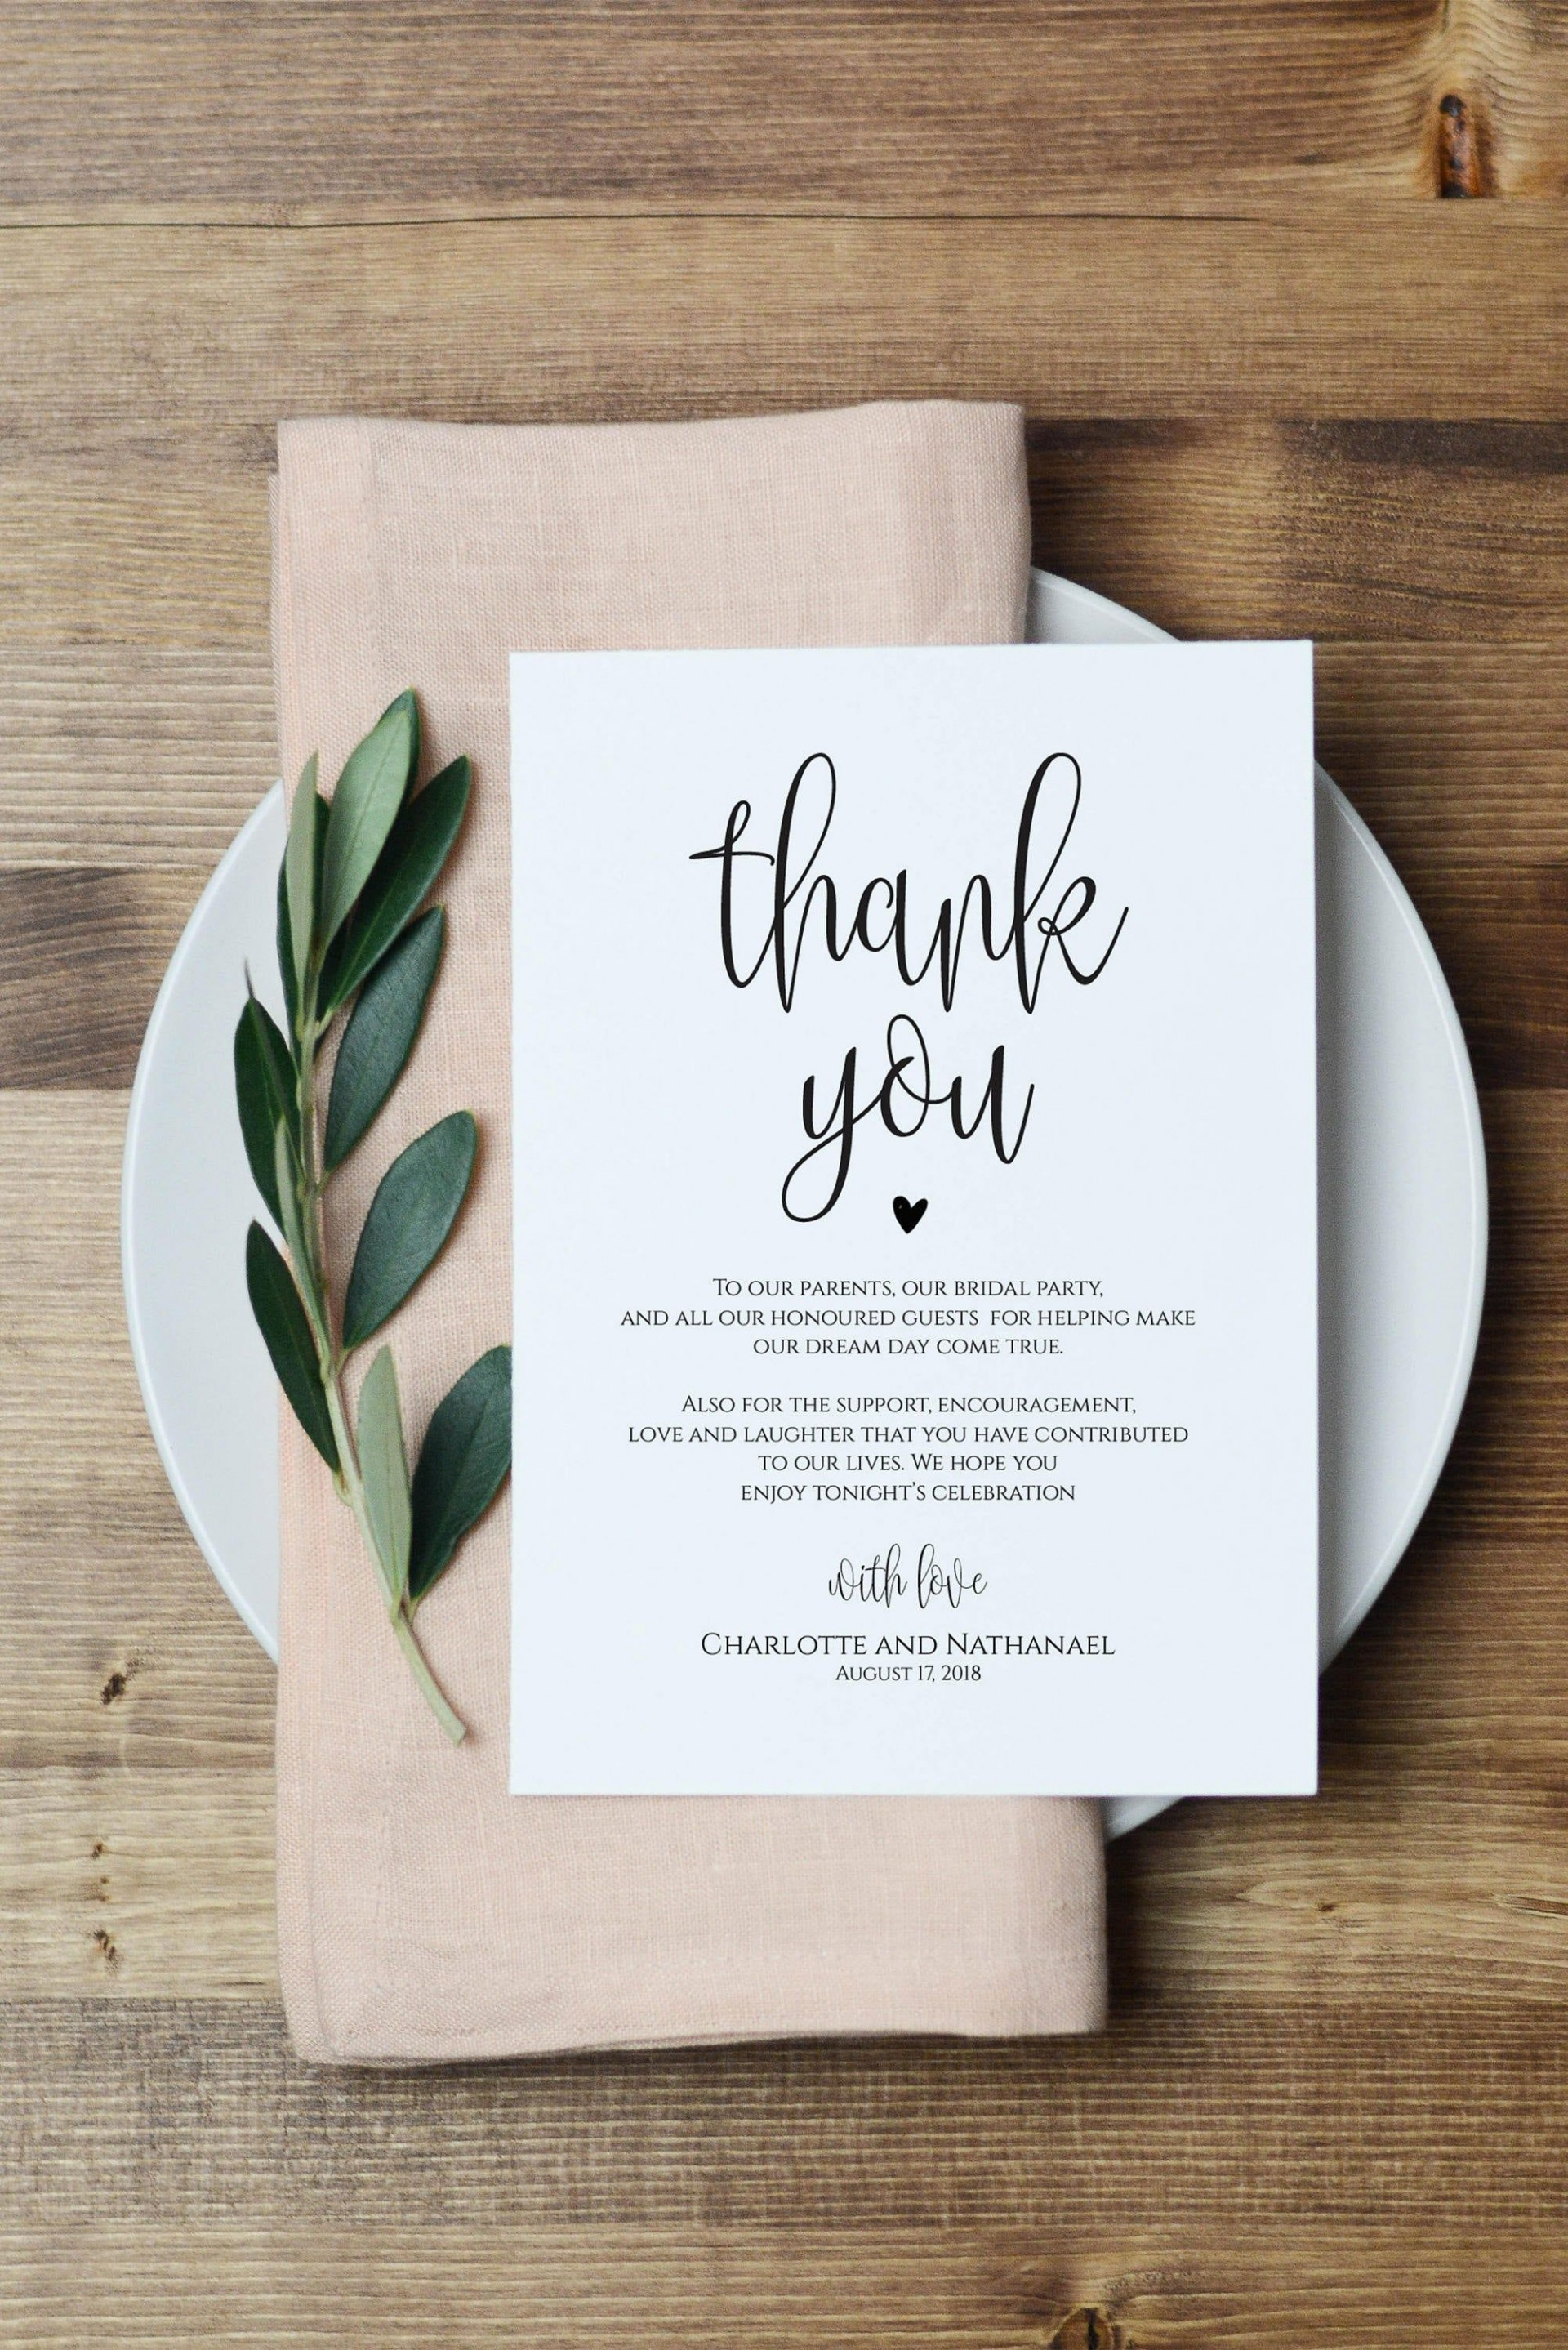 000 Amazing Thank You Note For Wedding Guest Template Picture  Card1920